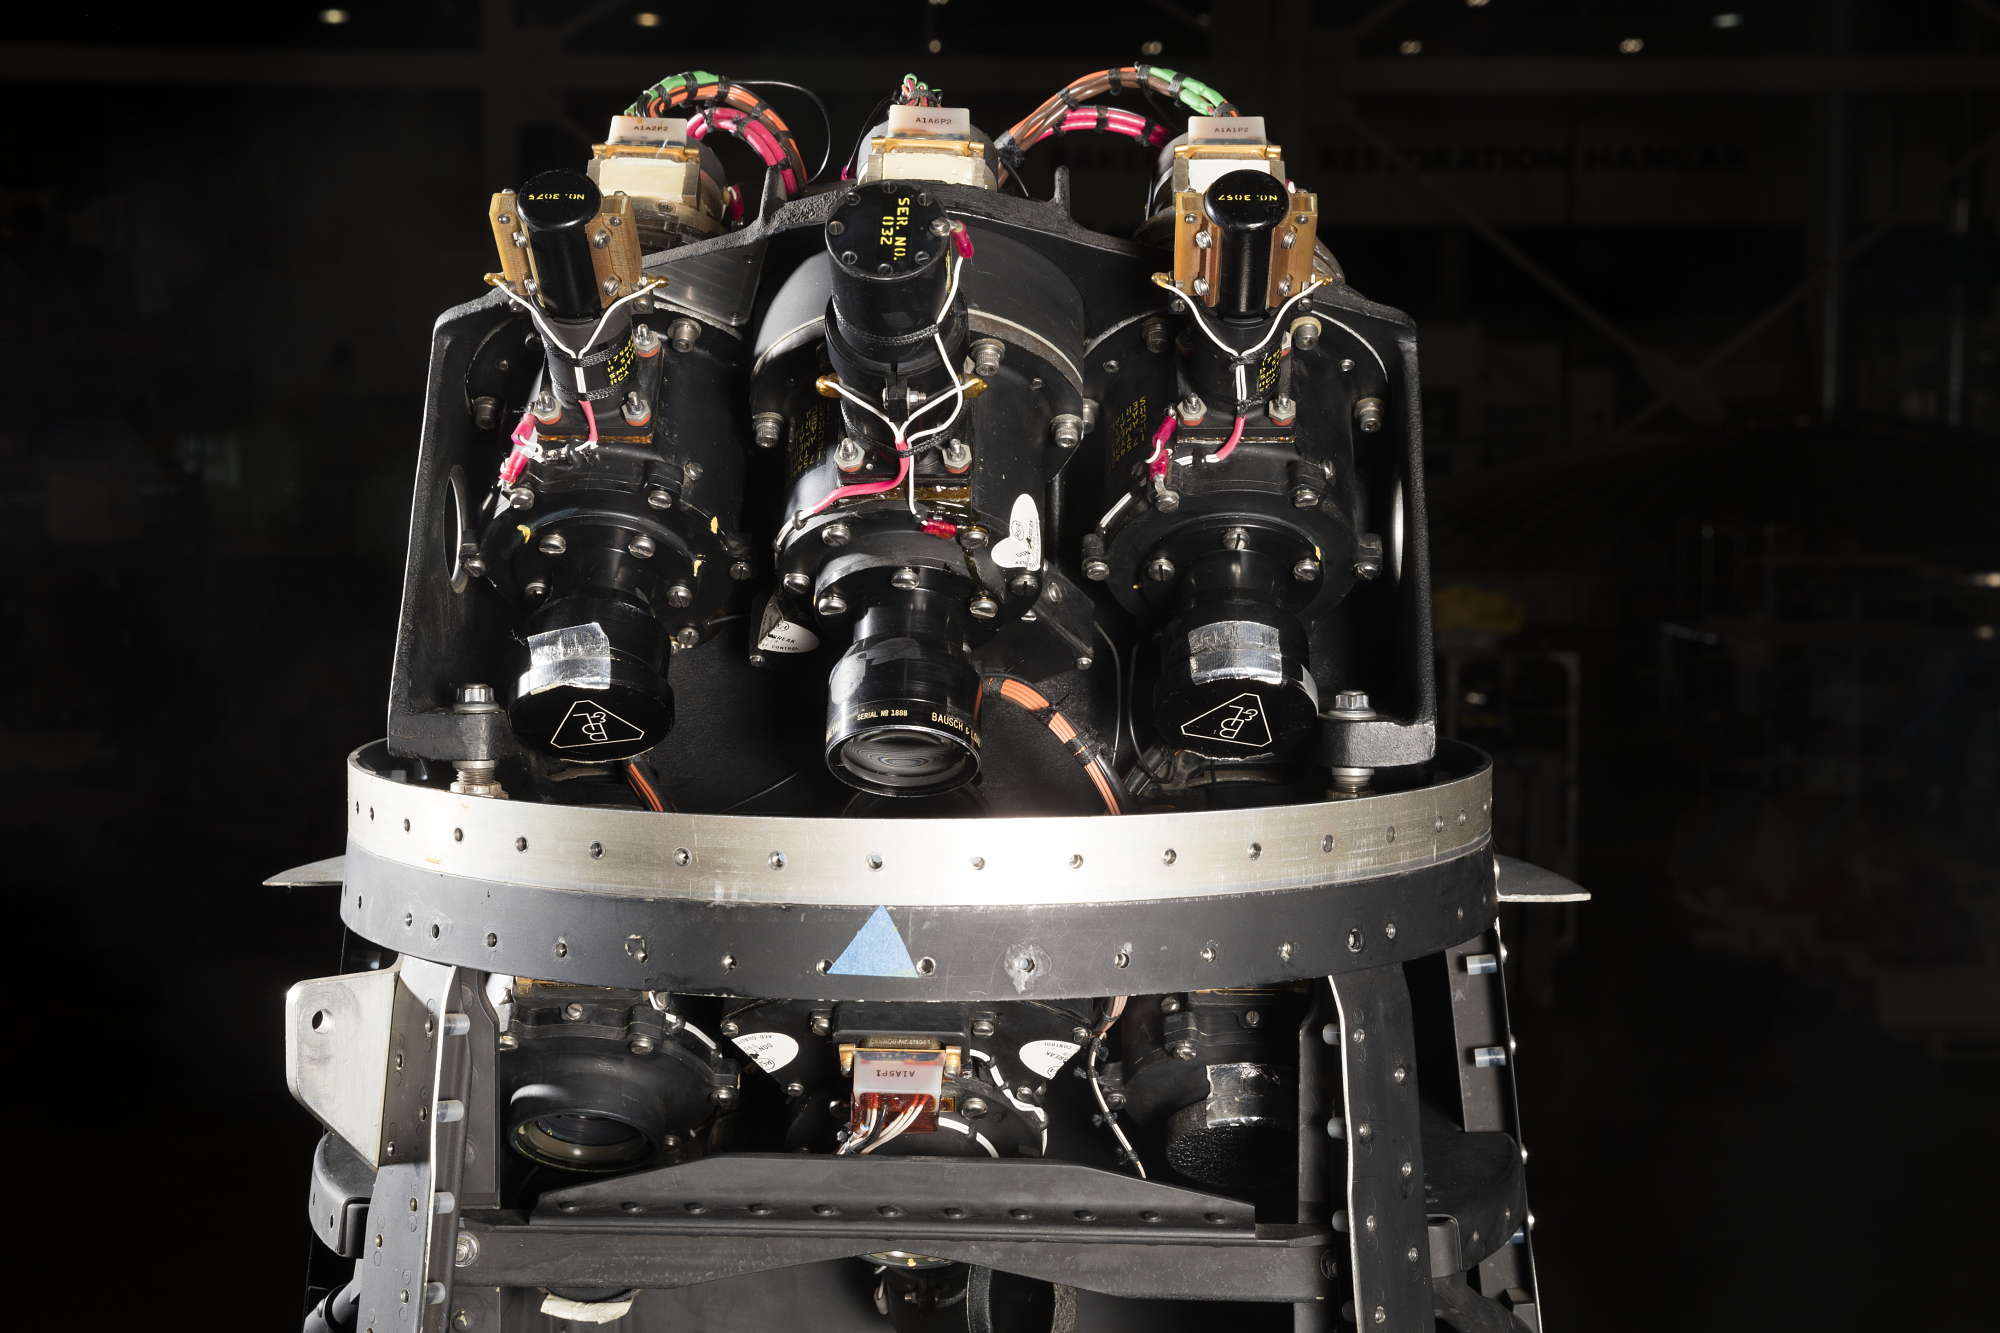 Three camera lenses on top portion of black Ranger spacecraft